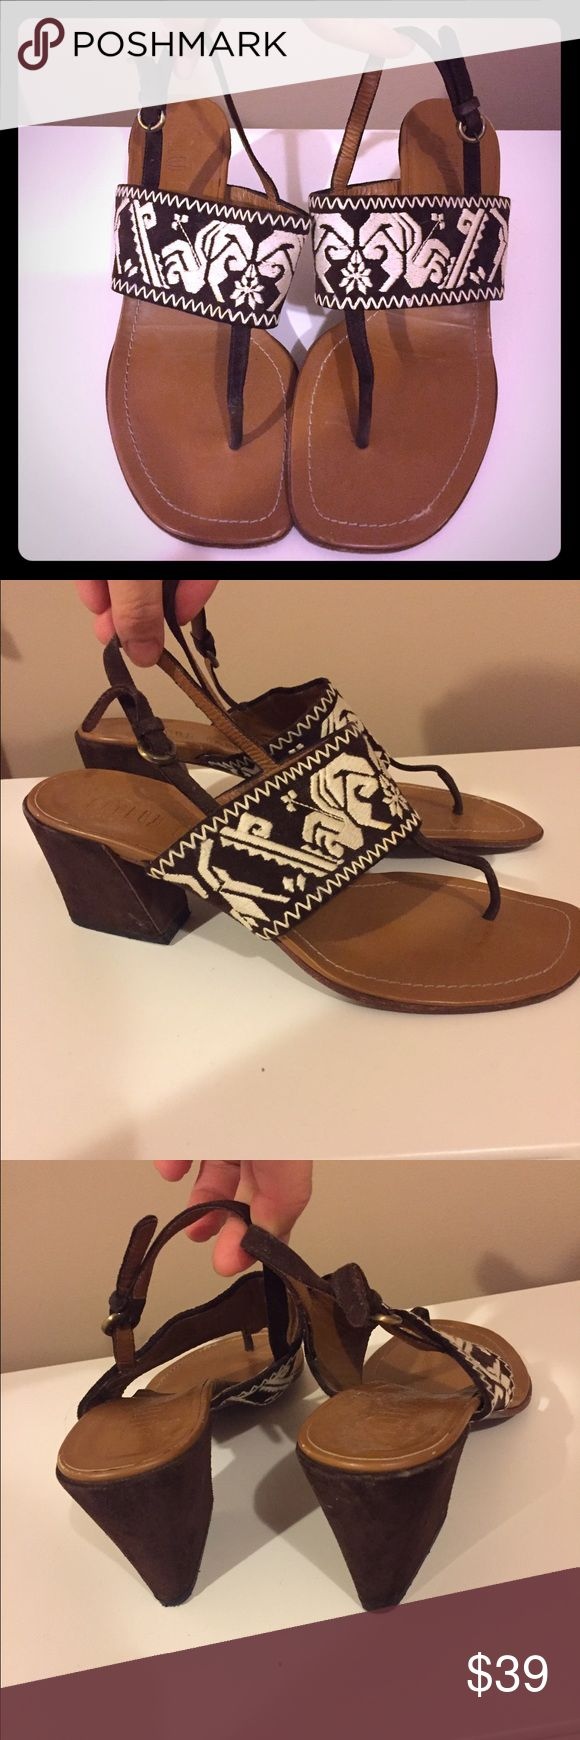 Auth miu miu Navajo camel sandals shoes 36.5 Love these. Great color to help extend those legs! Love the print to, goes nicely with shorts, jeans, dresses. Very versatile. I'm usually a 5.5 or 6 but bc the strap is adjustable, I wear them just fine as well. So if you are a 6 or 6.5, these will fit. No trades. Authentic miu miu. Really good price for these designer shoes!! No offers on pm. this is the lowest Miu Miu Shoes Sandals